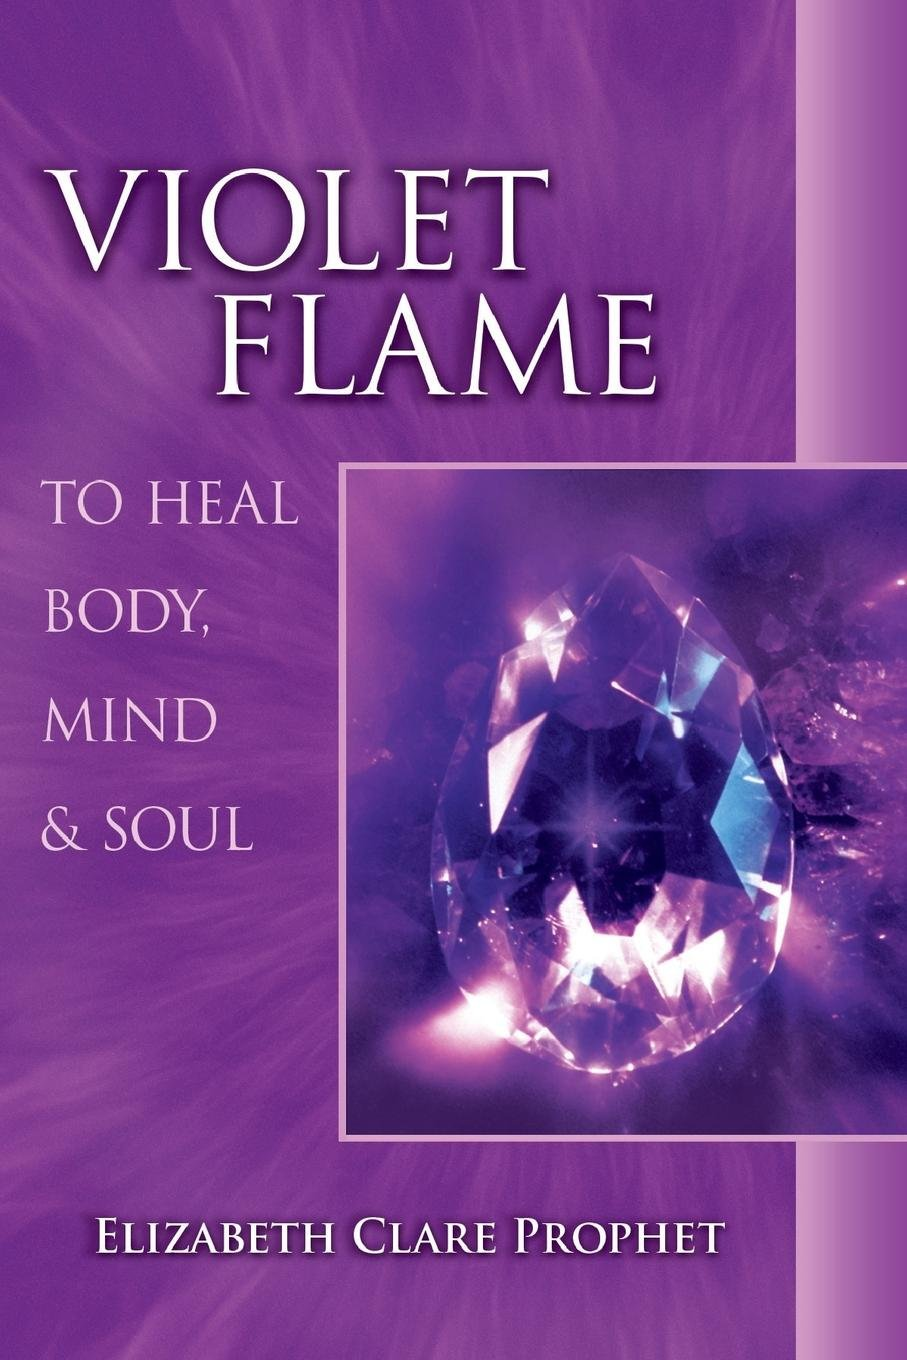 Violet Flame To Heal Body, Mind And Soul (Pocket Guide to Practical Spirituality) PDF